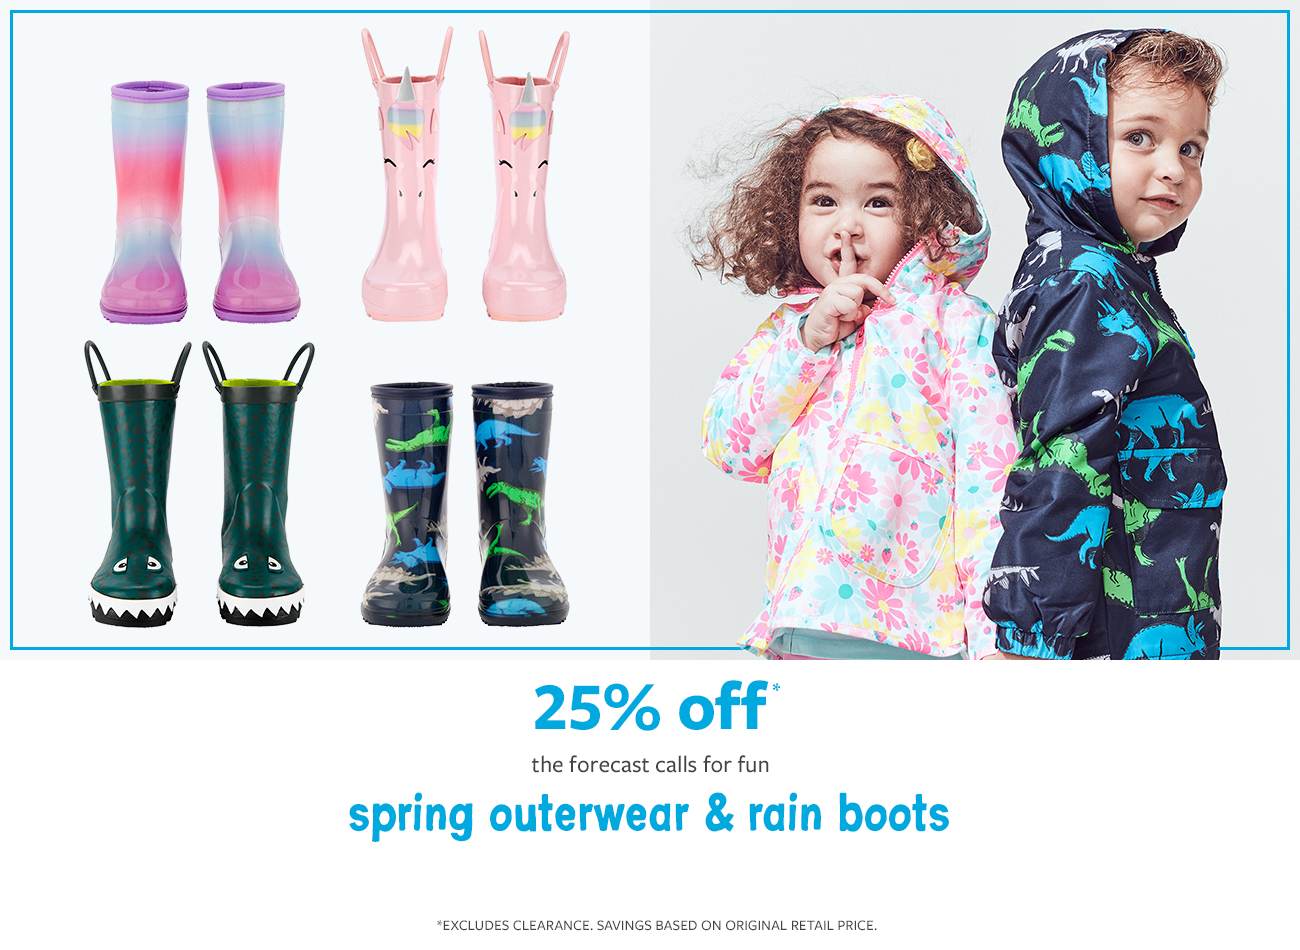 25% off spring outerwear & rain boots